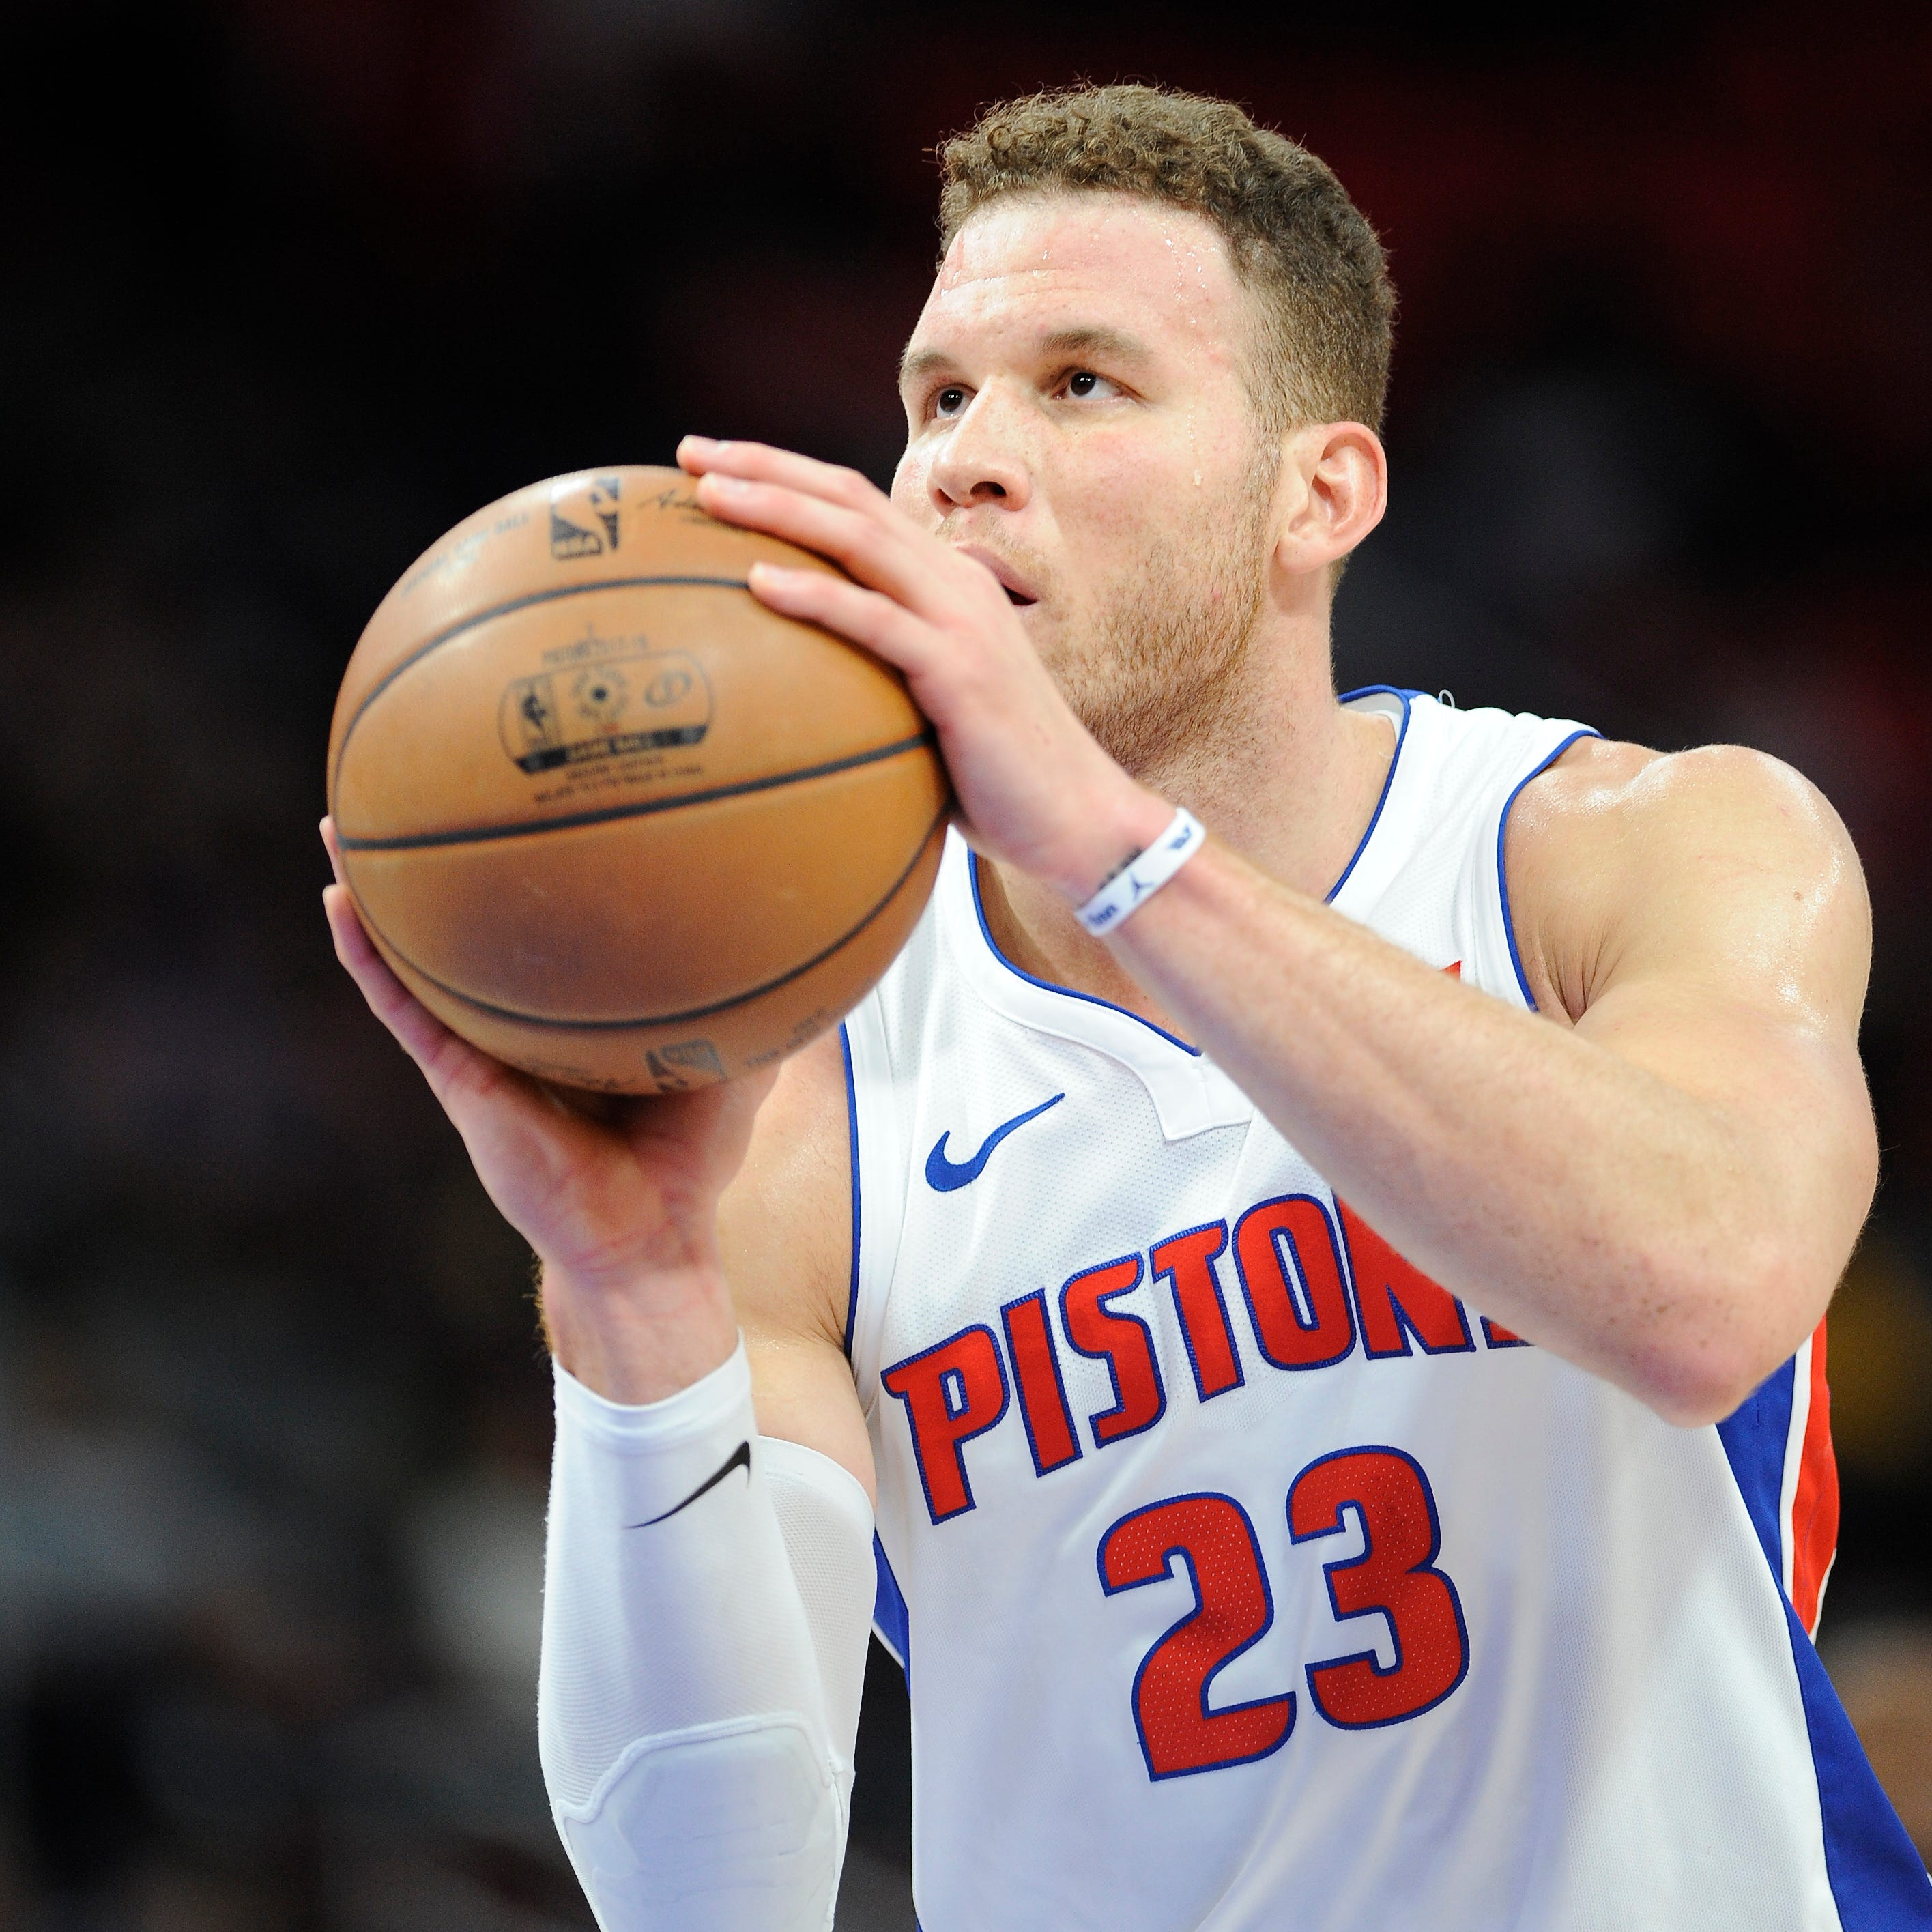 Pistons' Blake Griffin recovers place among NBA's elite